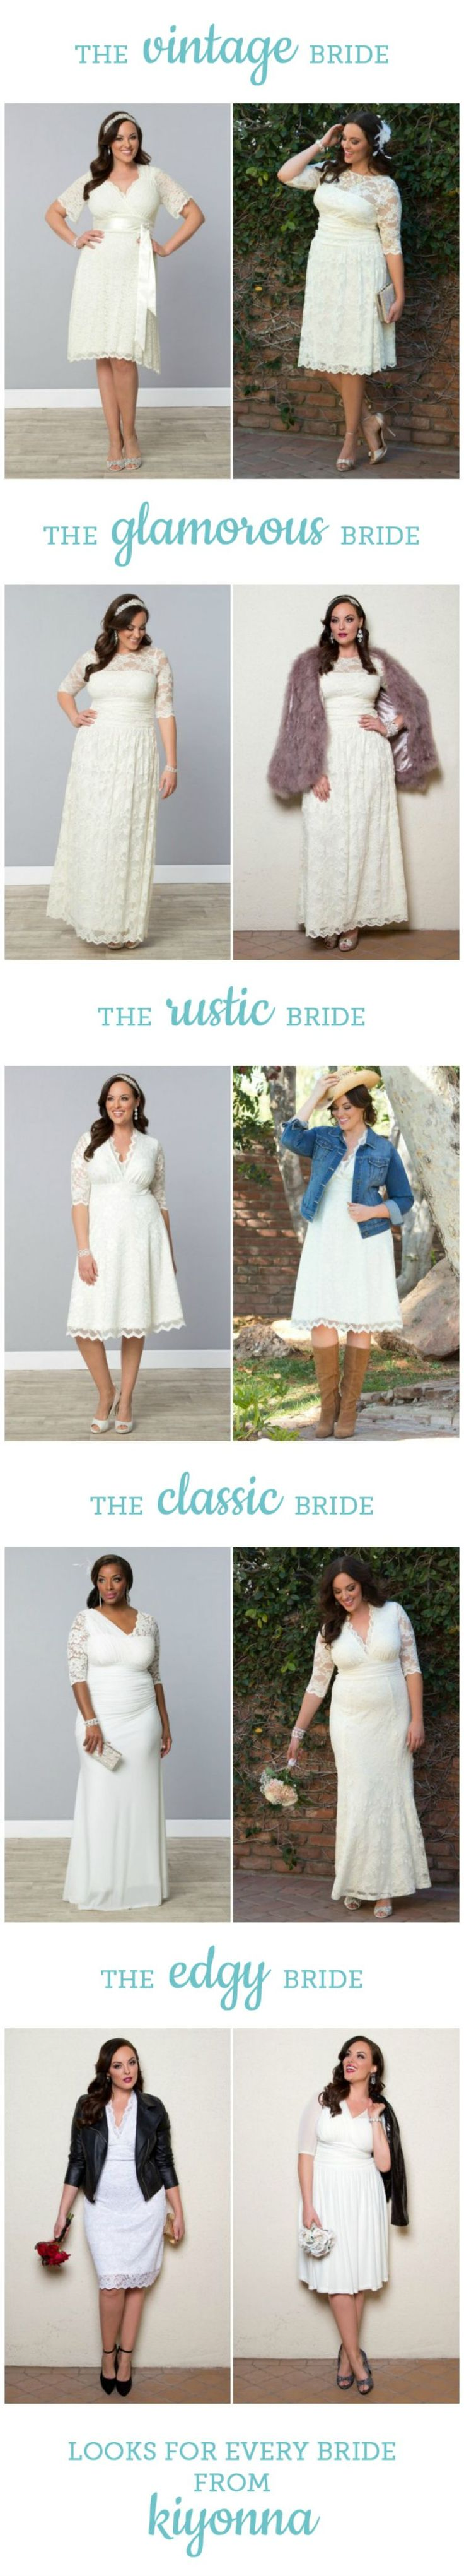 Affordable Wedding Dresses for Curvy girls in styles for every type of bride -- all from @kiyonna!